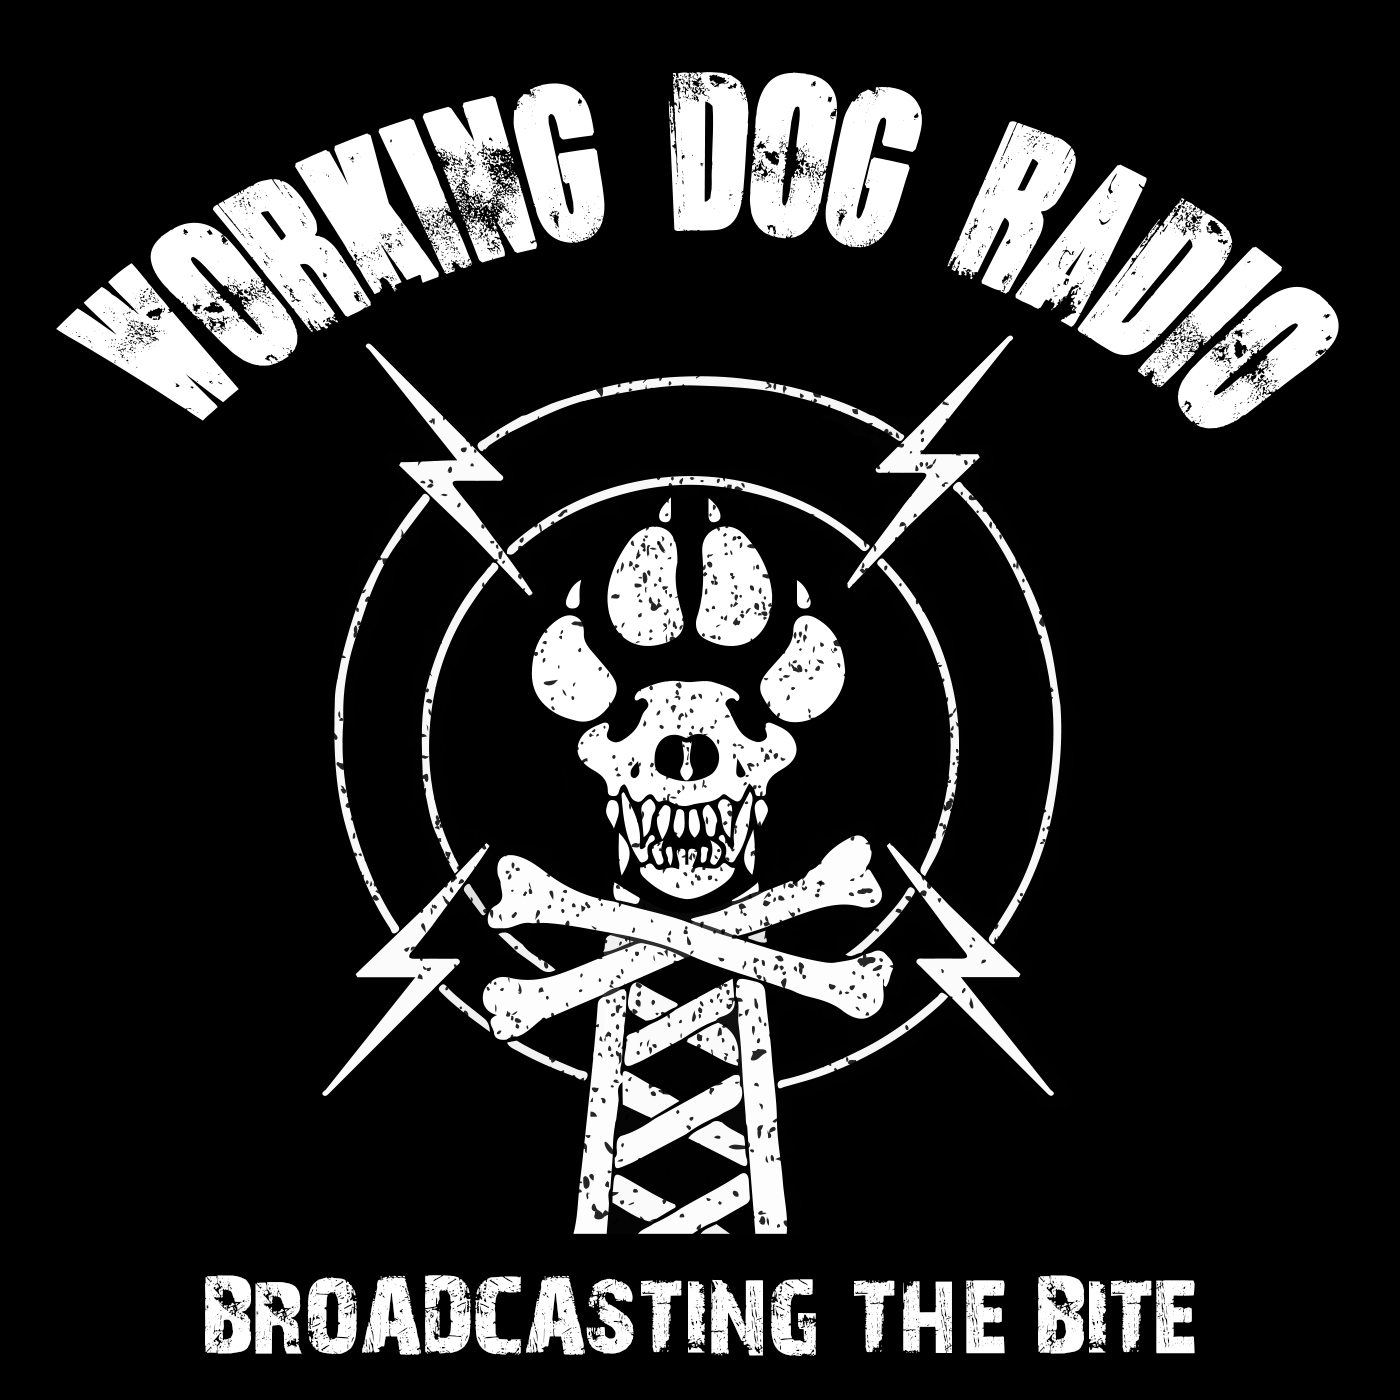 Working Dog Radio